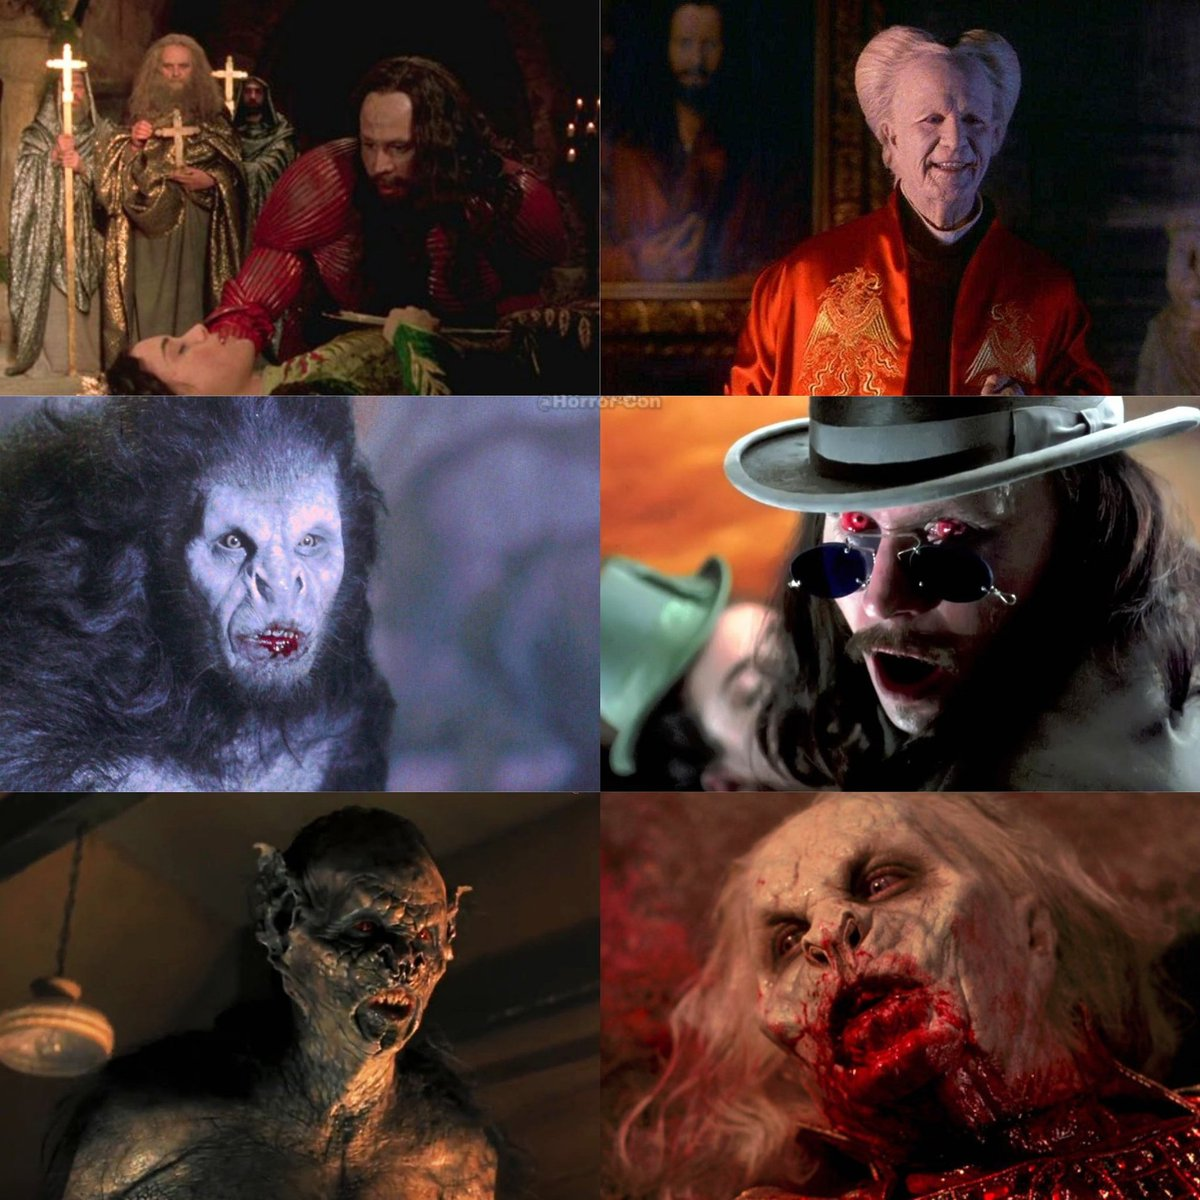 RT @HorrorCon2013: 27 years ago, Bram Stoker's Dracula was released! https://t.co/lY8Acj5qID